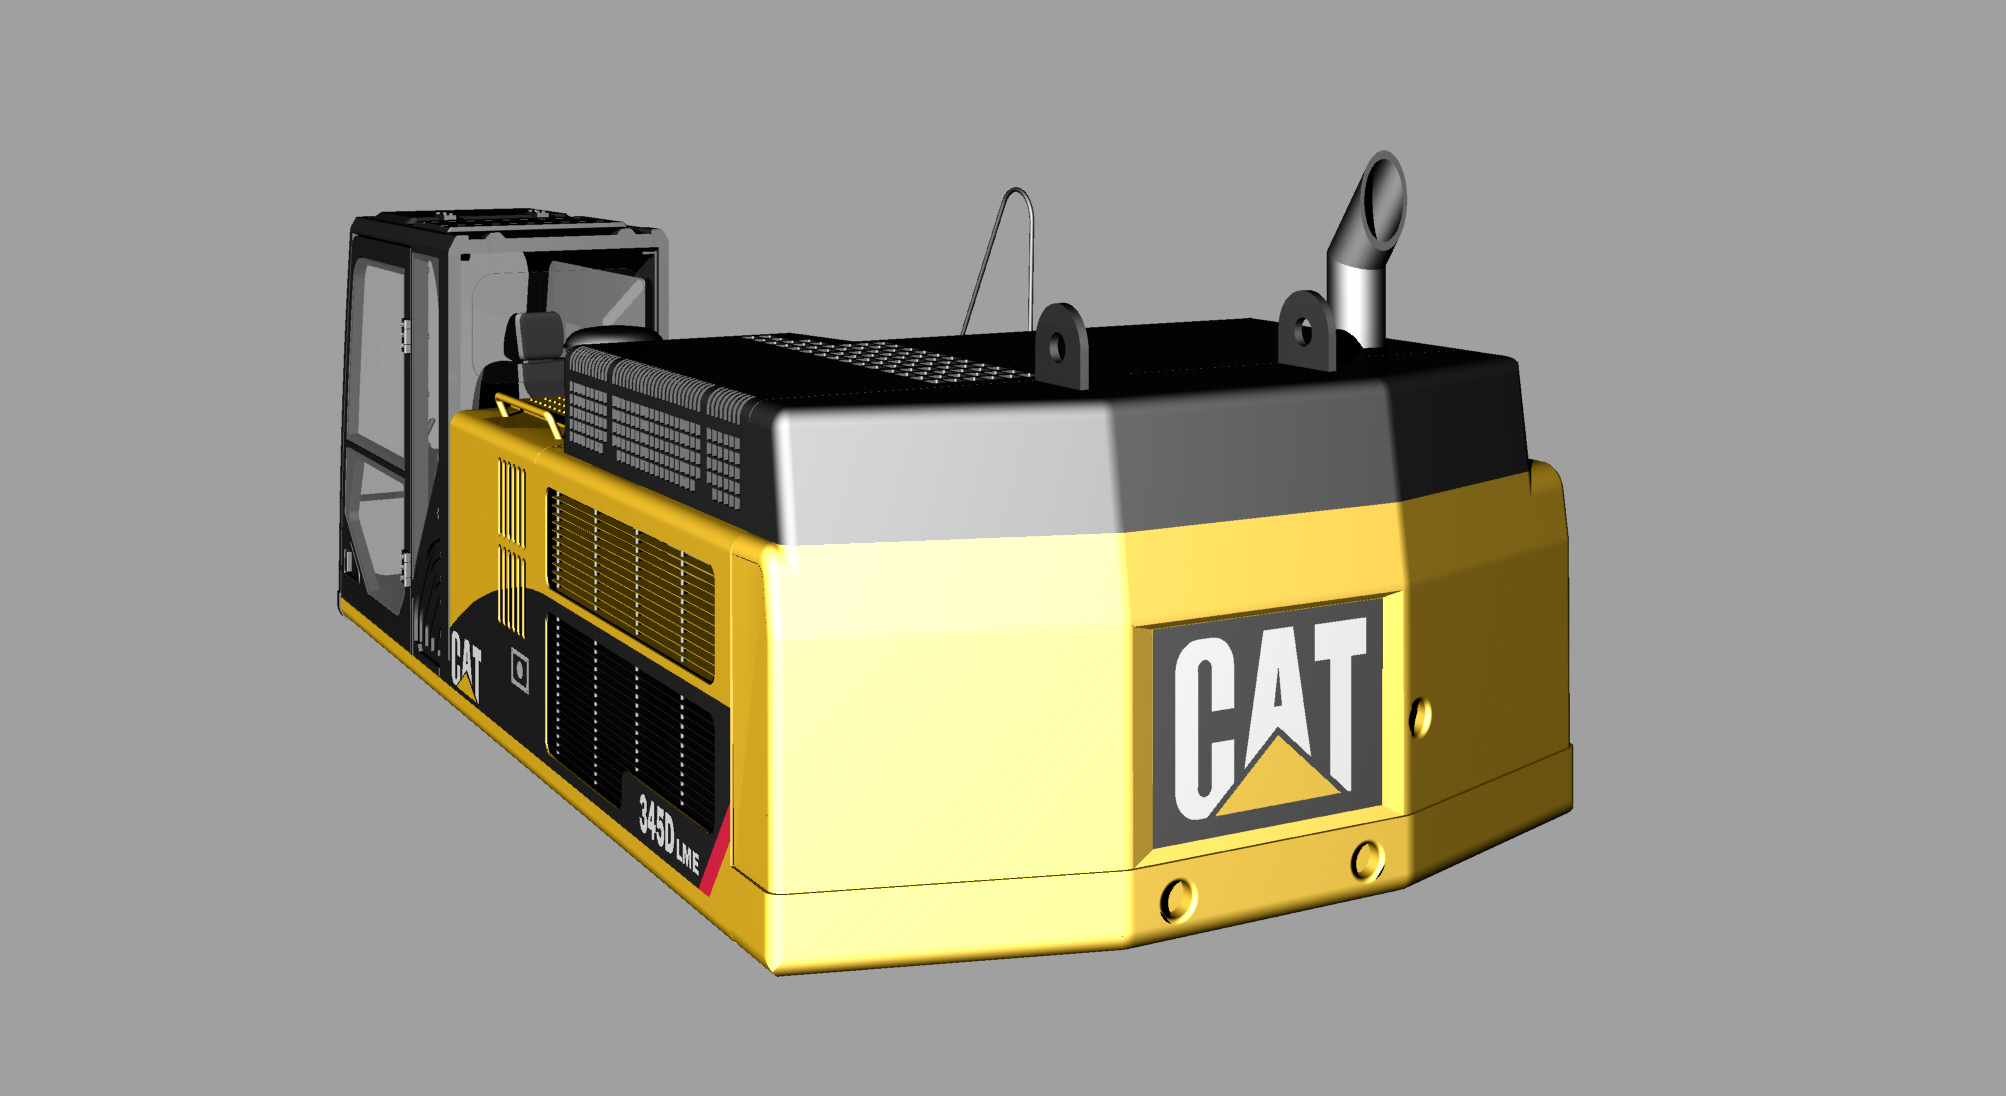 CAT 345D LME RC VUE AR 002.jpg